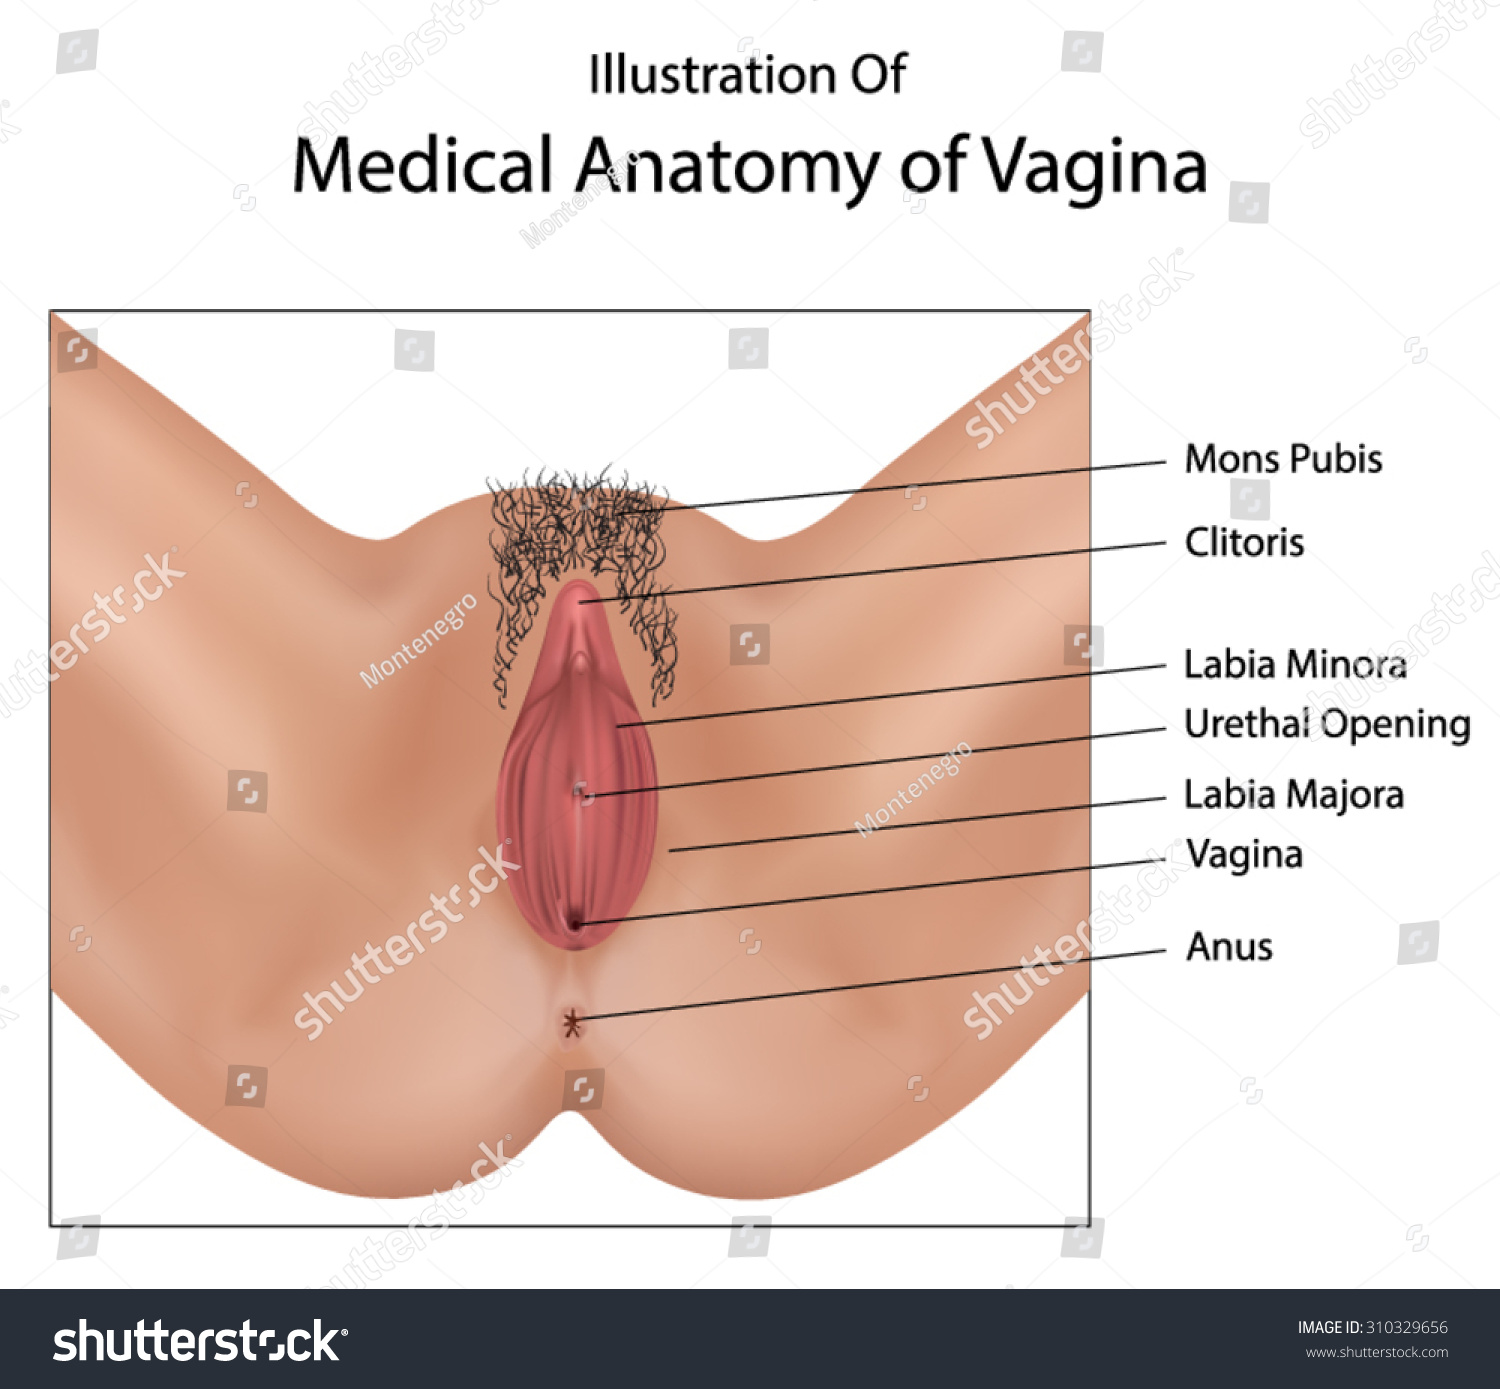 Medical picture of vulva